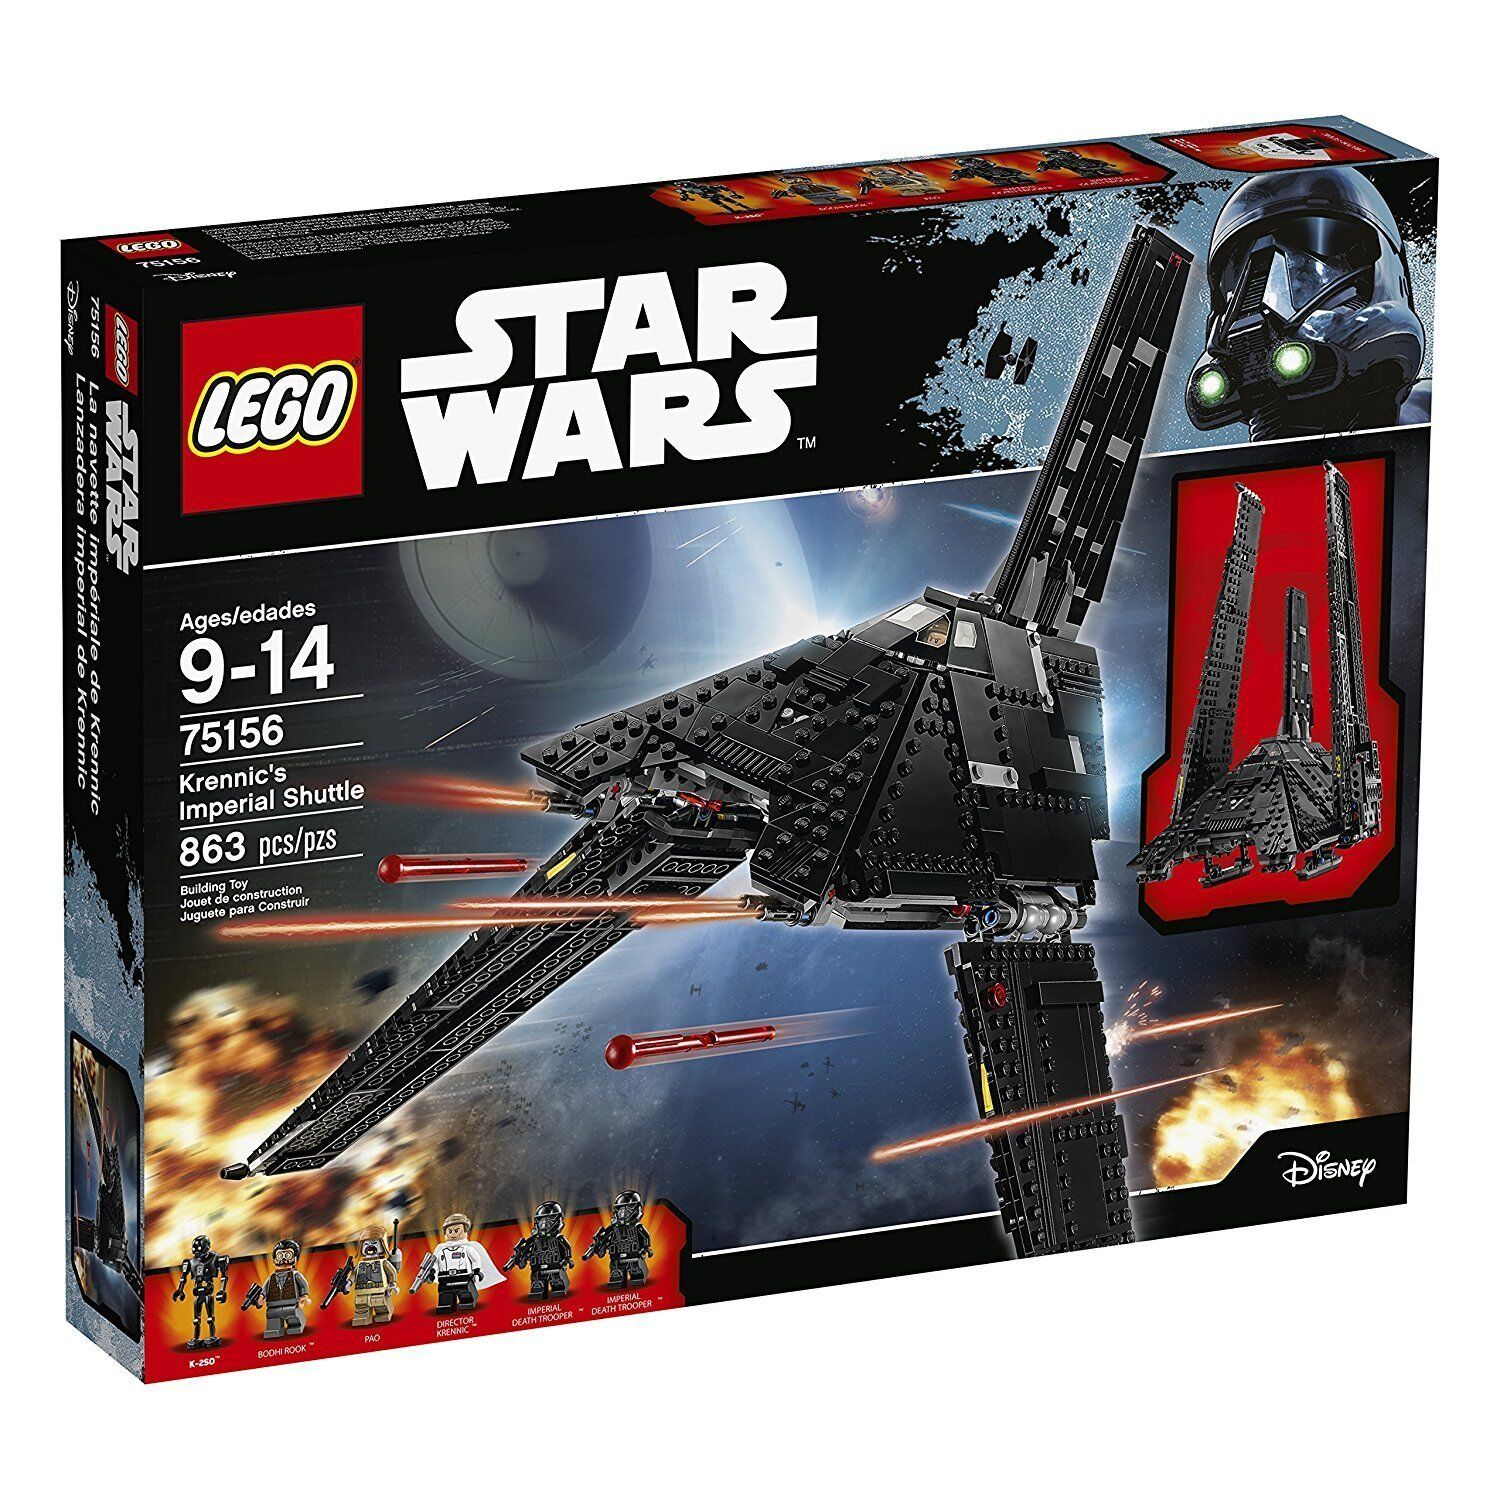 LEGO ® star wars ™ 75156 krennics Imperial shuttle NEUF NEW OVP MISB